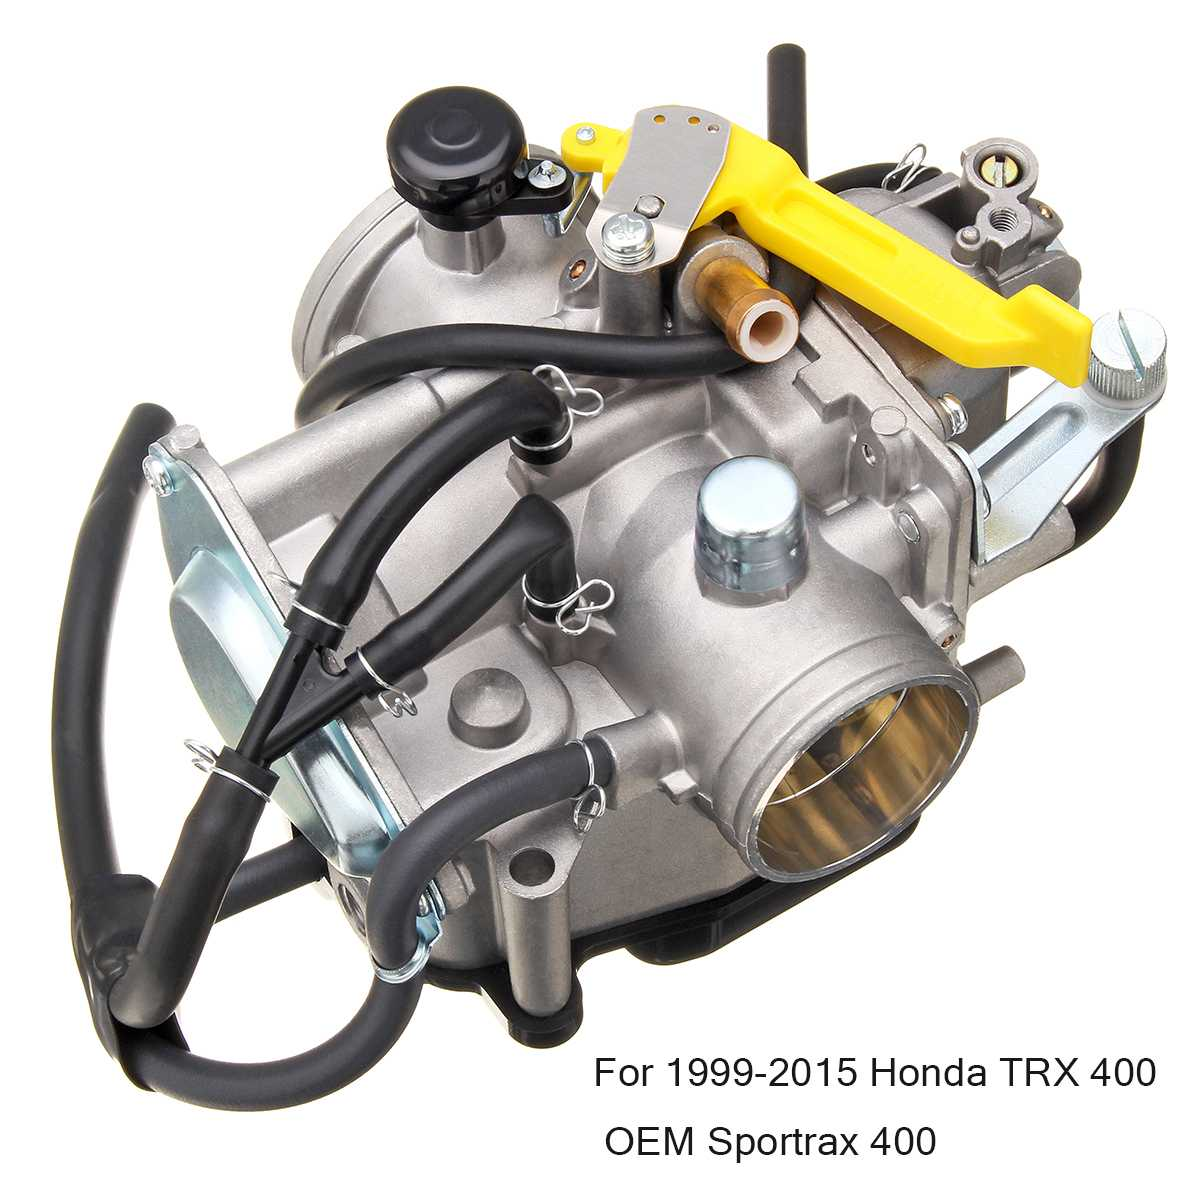 Carburetor Carb 16100-HN1-A43 For Honda 1999-2015 OEM Sportrax 400Carburetor Carb 16100-HN1-A43 For Honda 1999-2015 OEM Sportrax 400